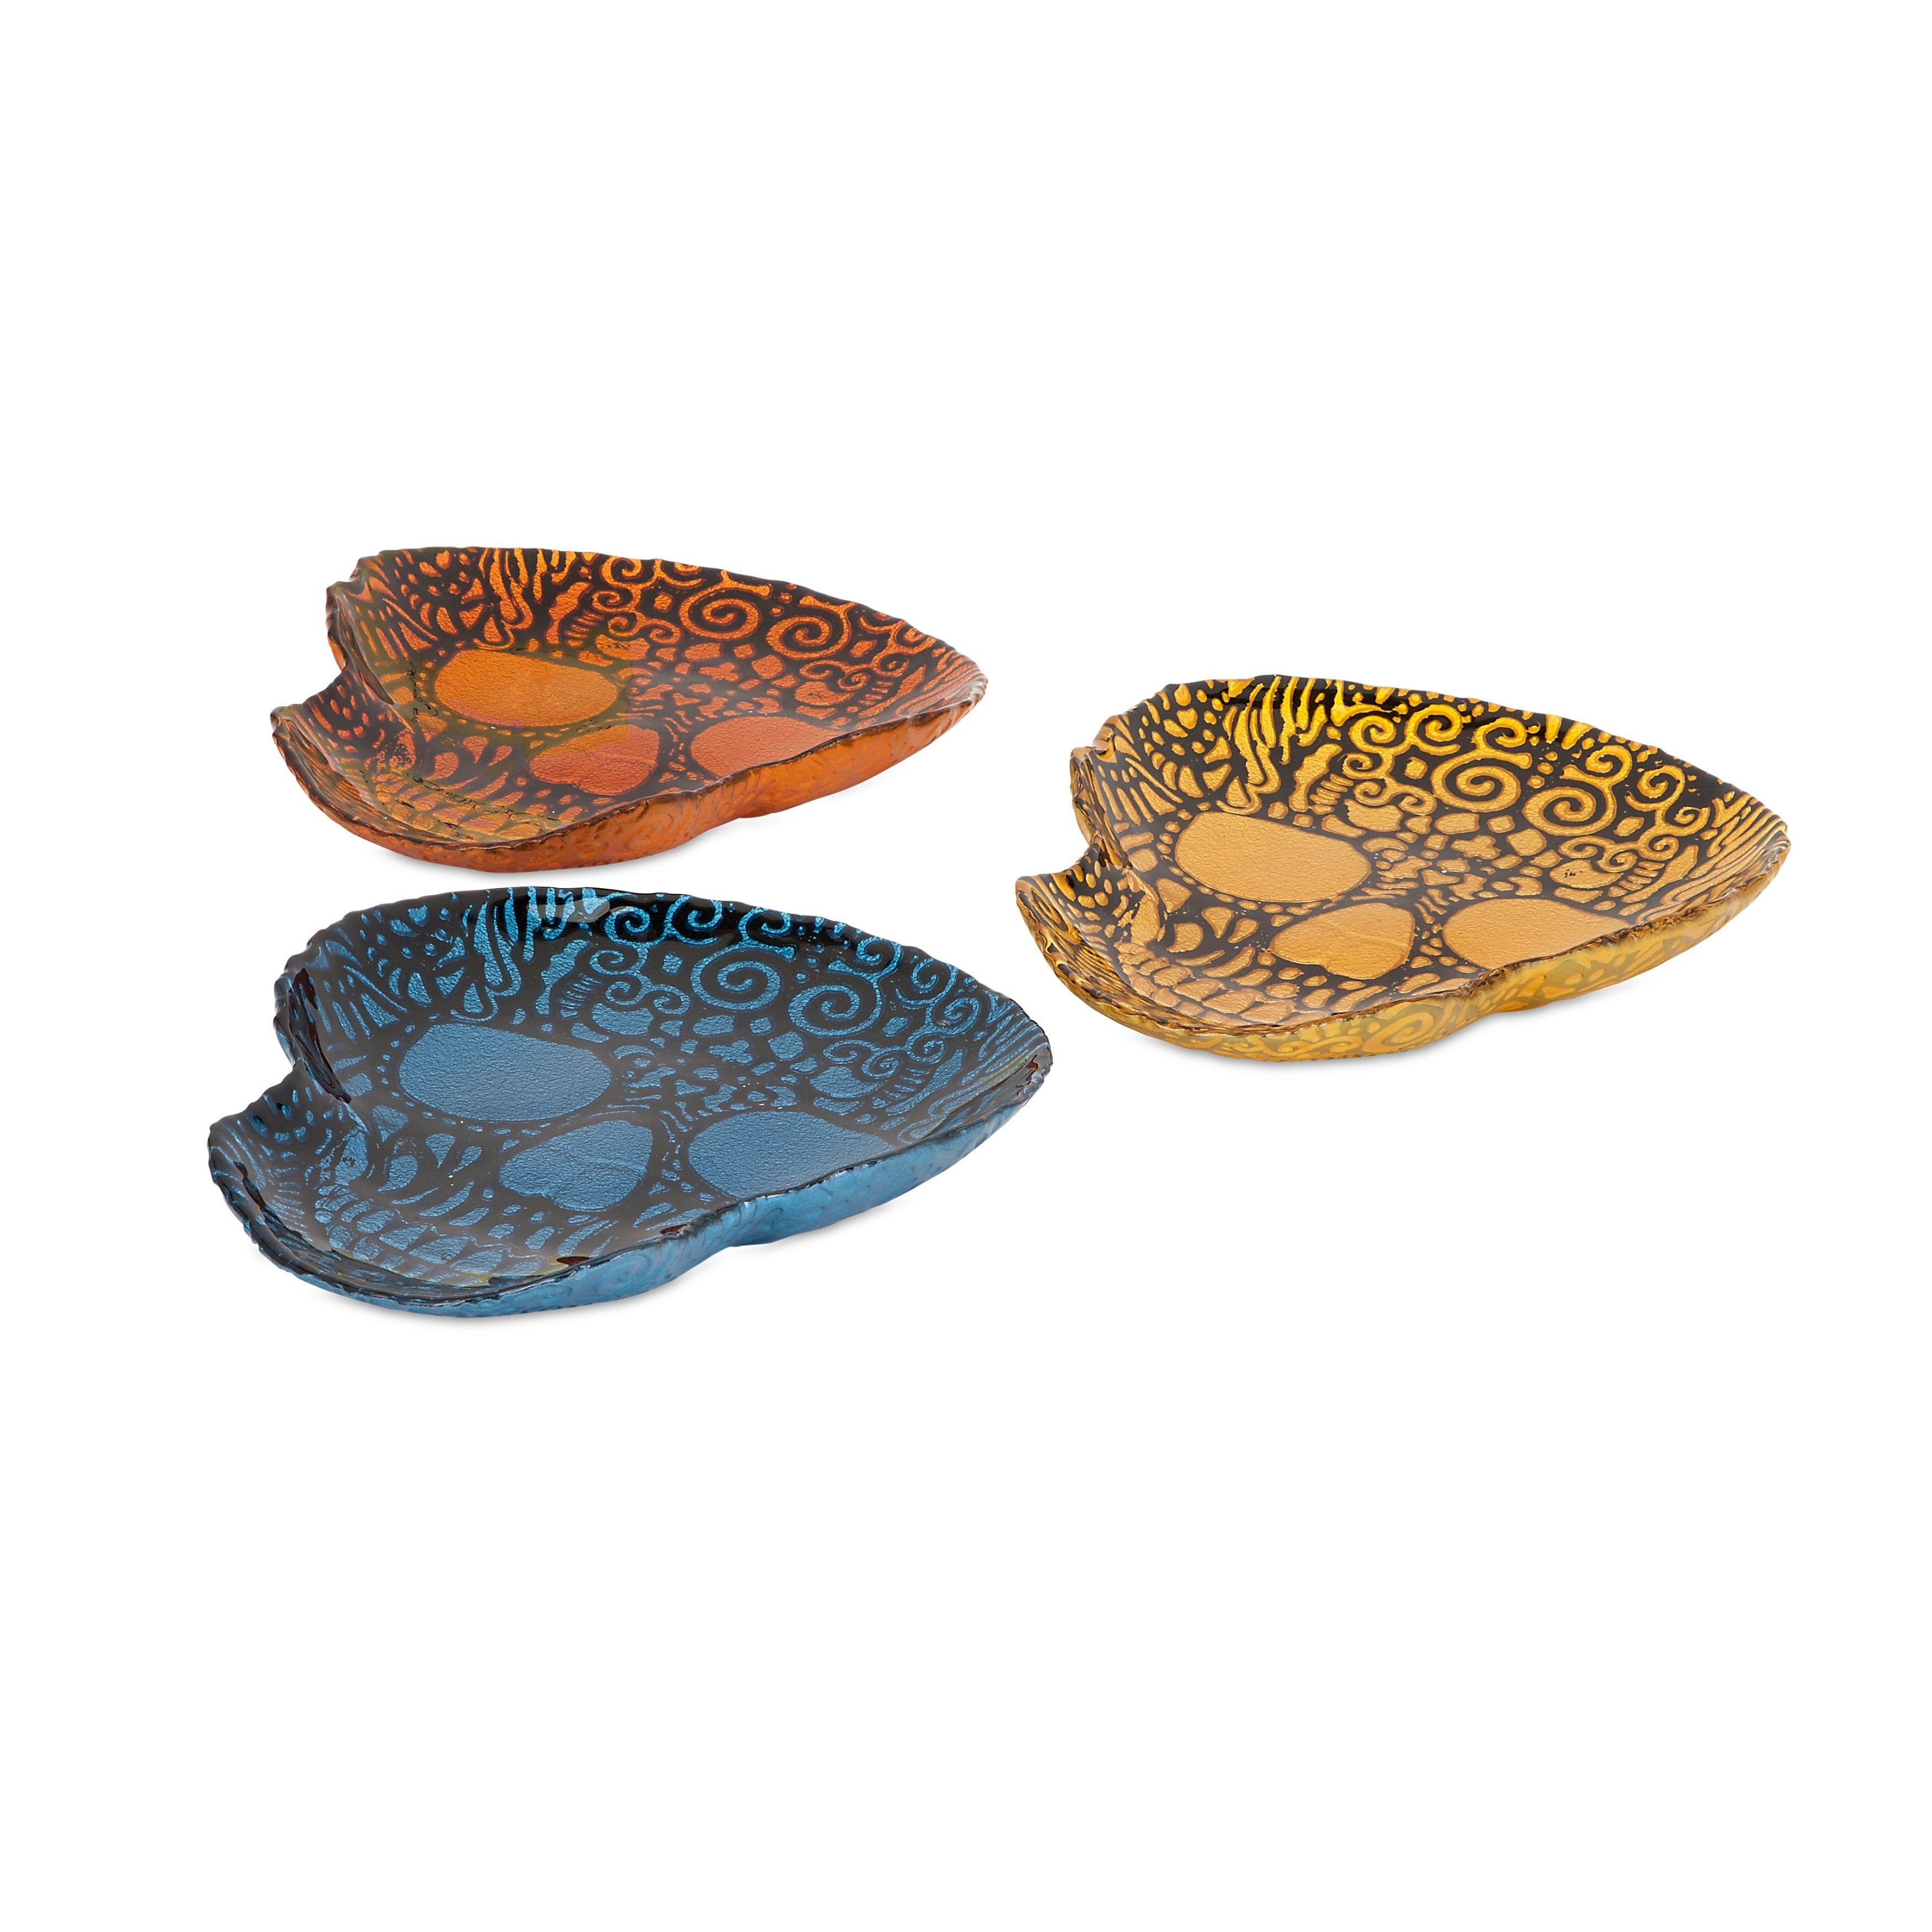 IMAX Merida Glass Dishes - Ast 3 (Chargers/Plates), Multi